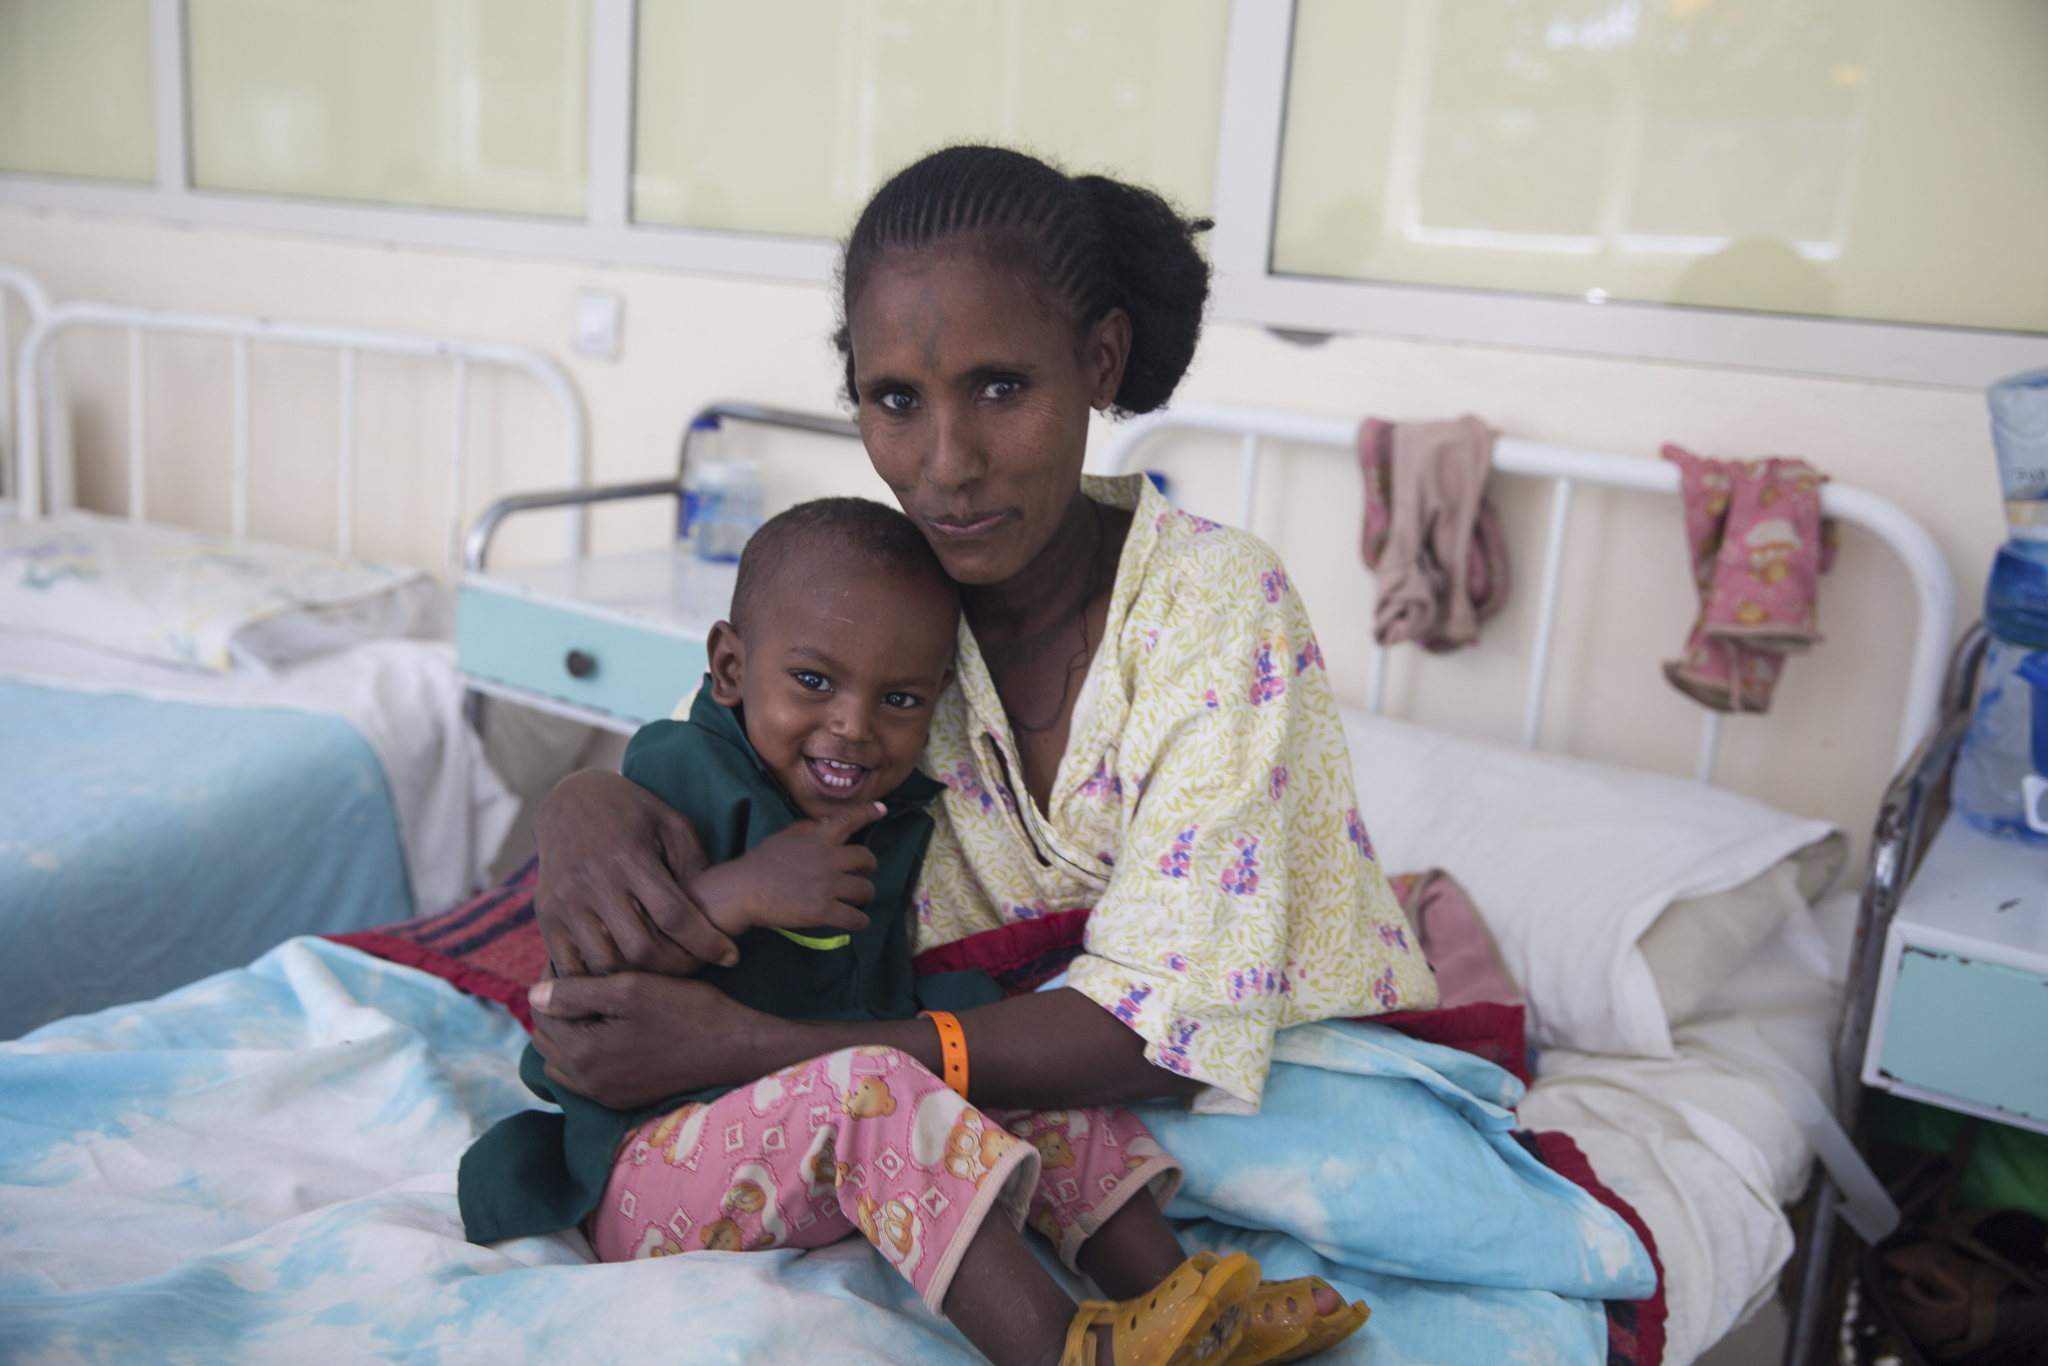 A mother and her young son sitting in a patient care bed smiling